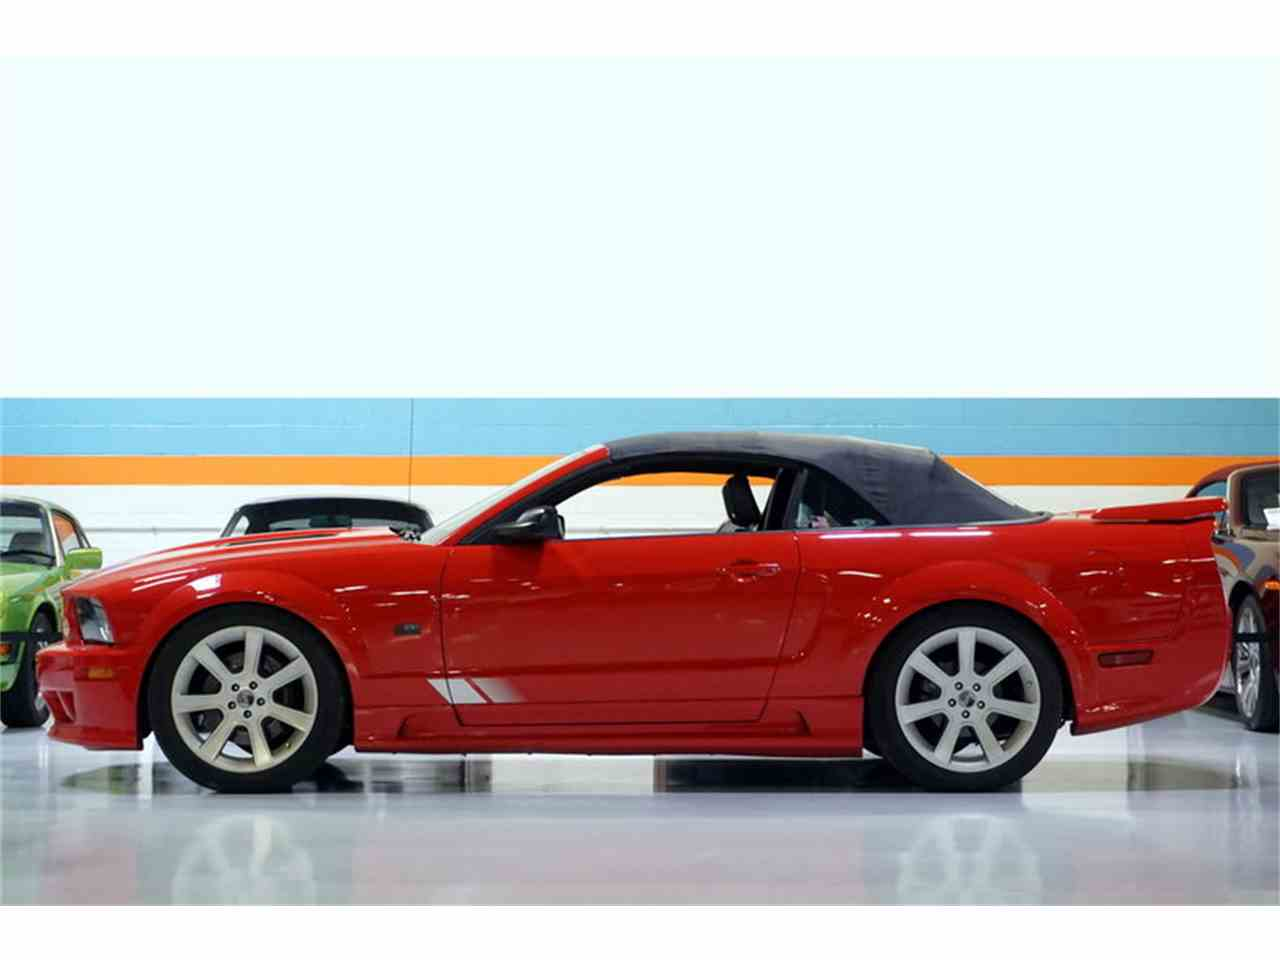 2006 ford mustang gt (saleen) for sale   classiccars   cc-1042215